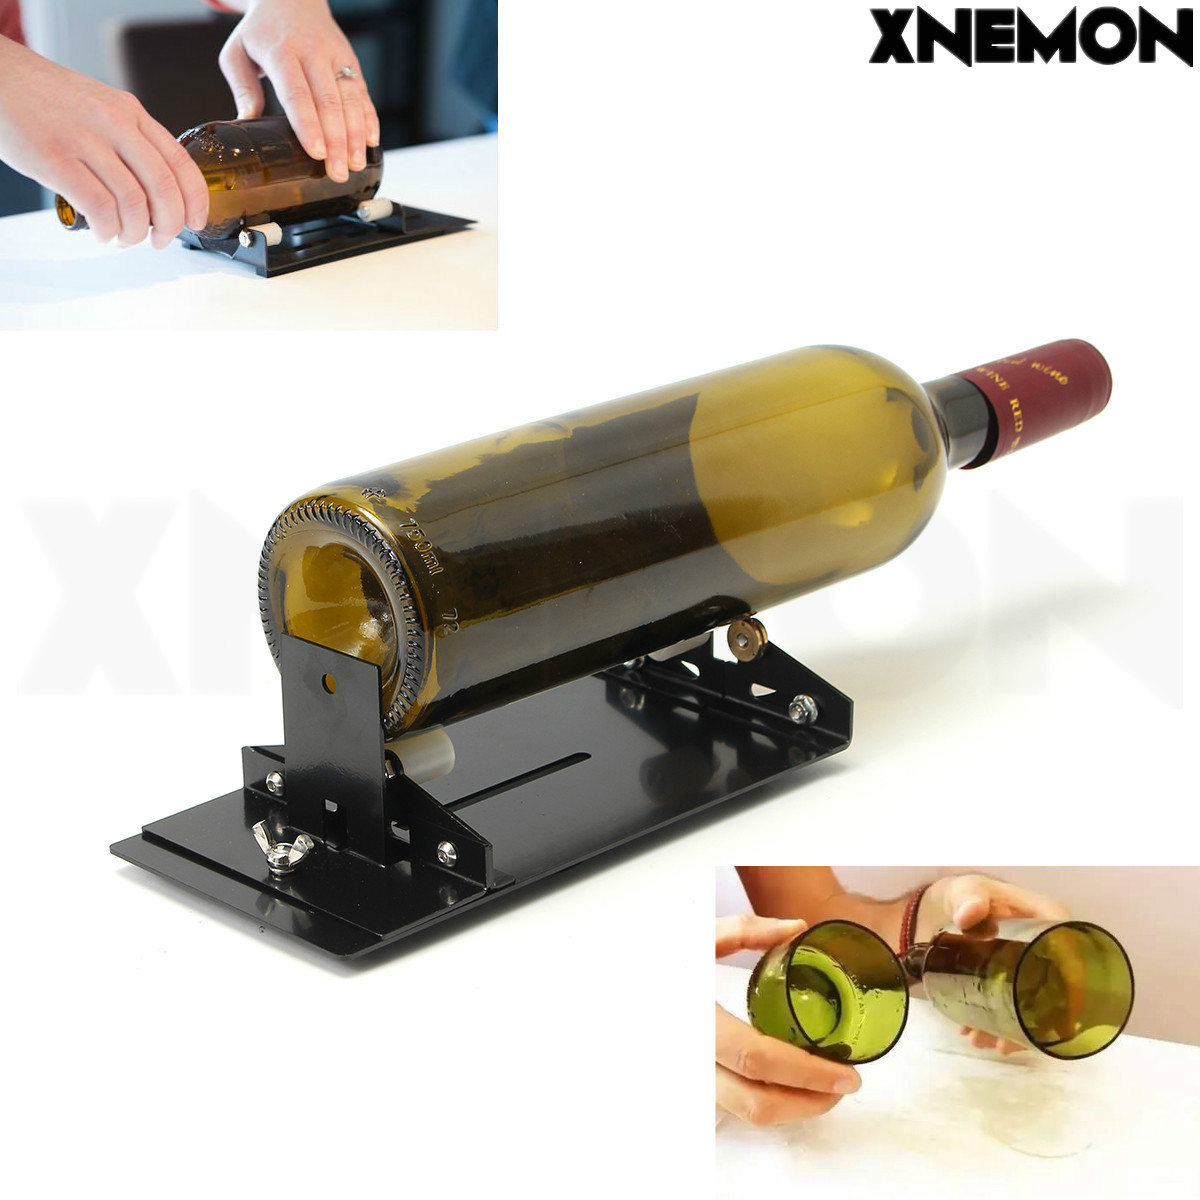 XNEMON Glass Bottle Cutter Machine for Wine Beer Glass Bottles Bottle Cutting Tool Cutters with Plastic Pulley, YG8 Cutter Wheel stainless steel wine and beer bottle opener with foil cutter